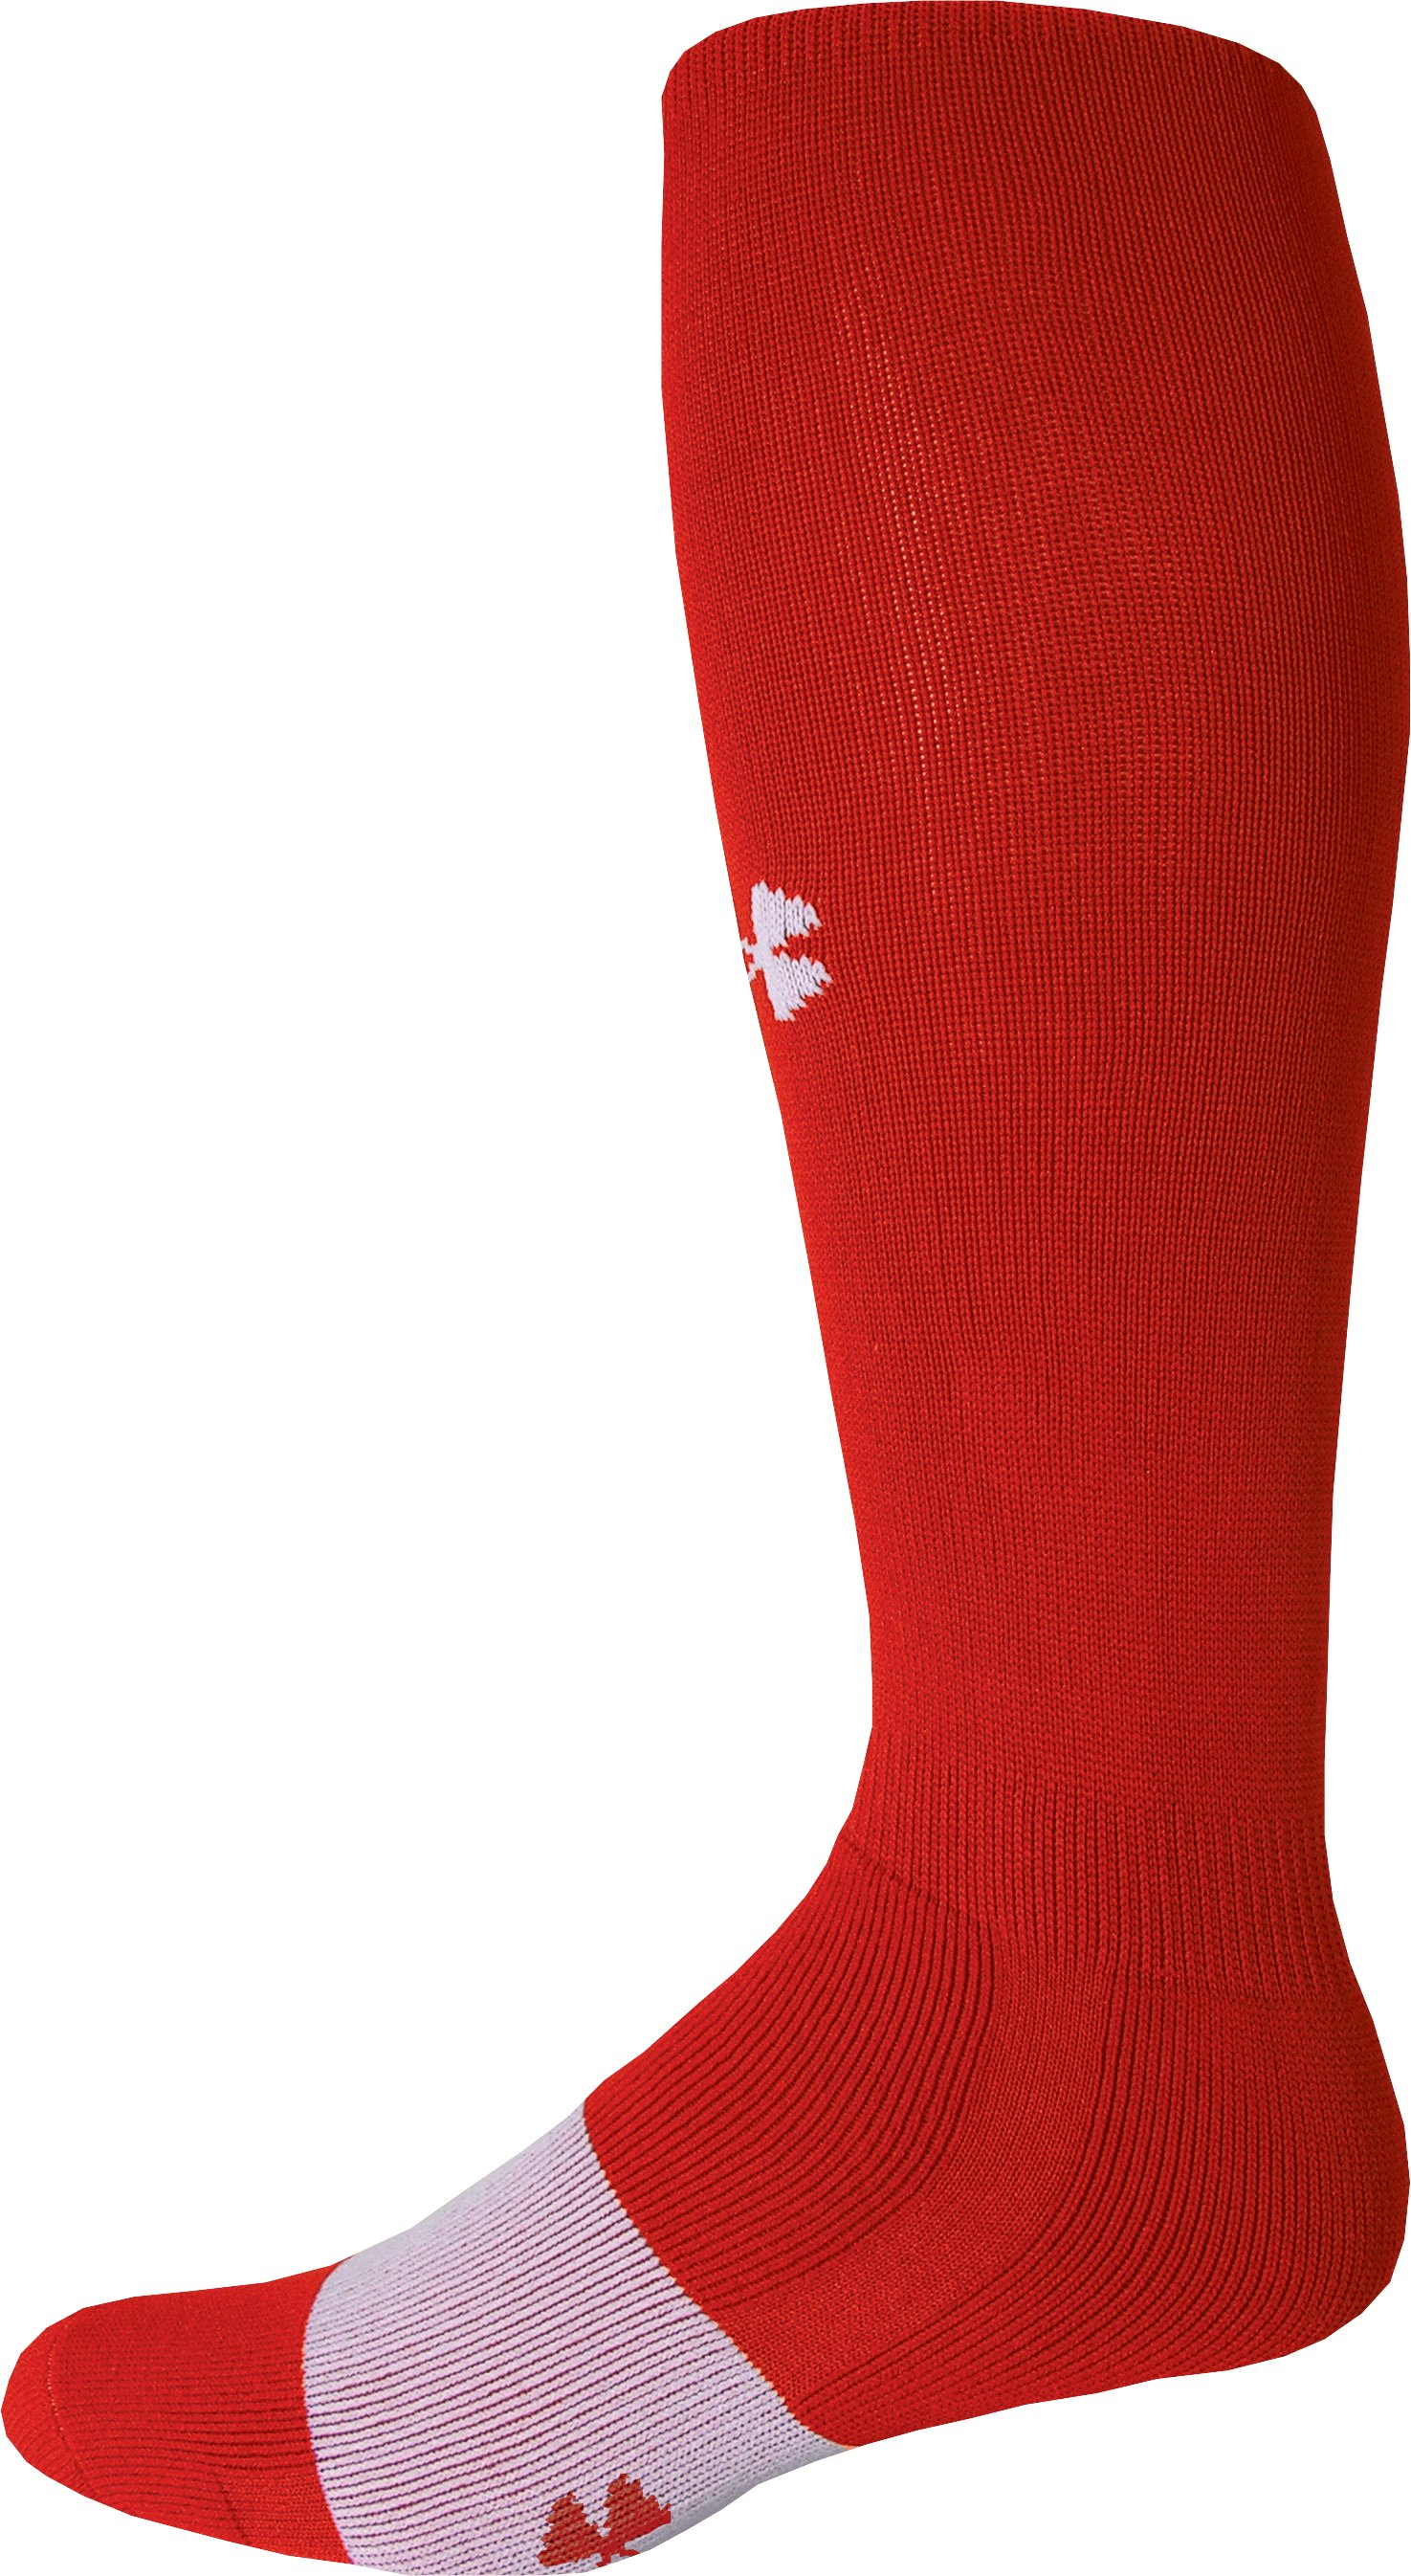 Men's Allsport Sock, Red